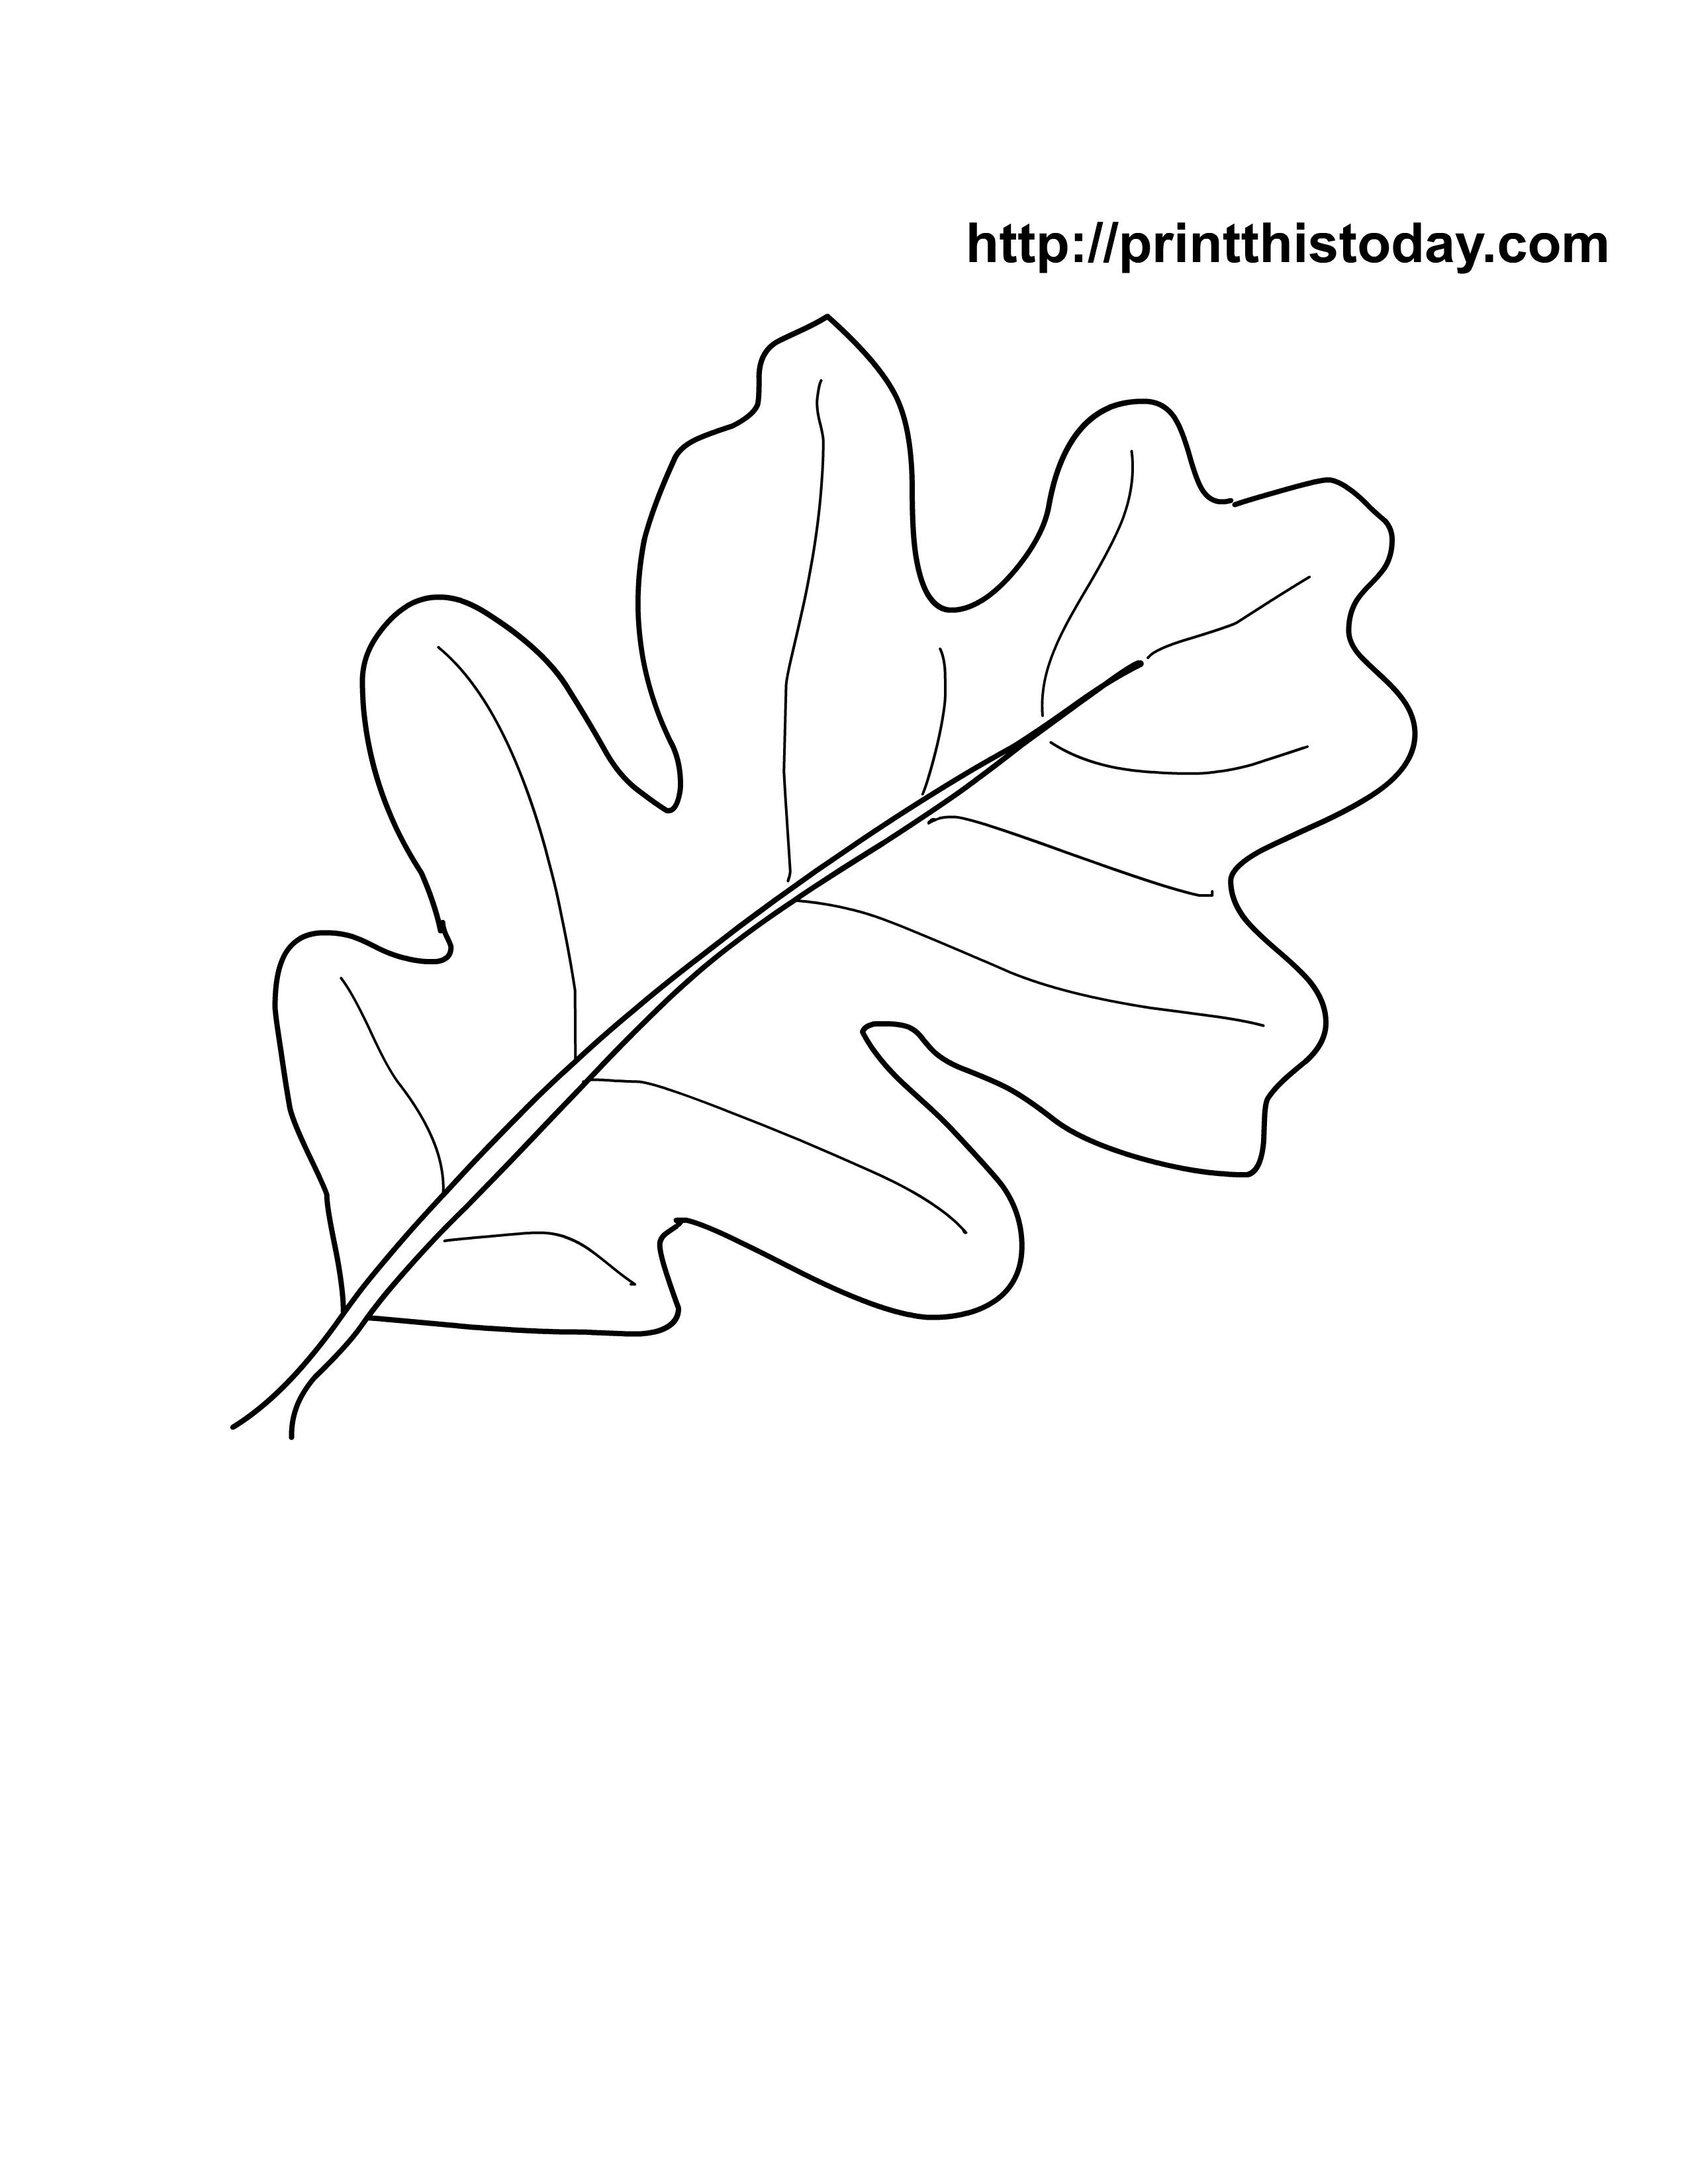 2550x3300 Exploit Leaf Print Outs Oak Leaves Coloring Pages Printable Craft